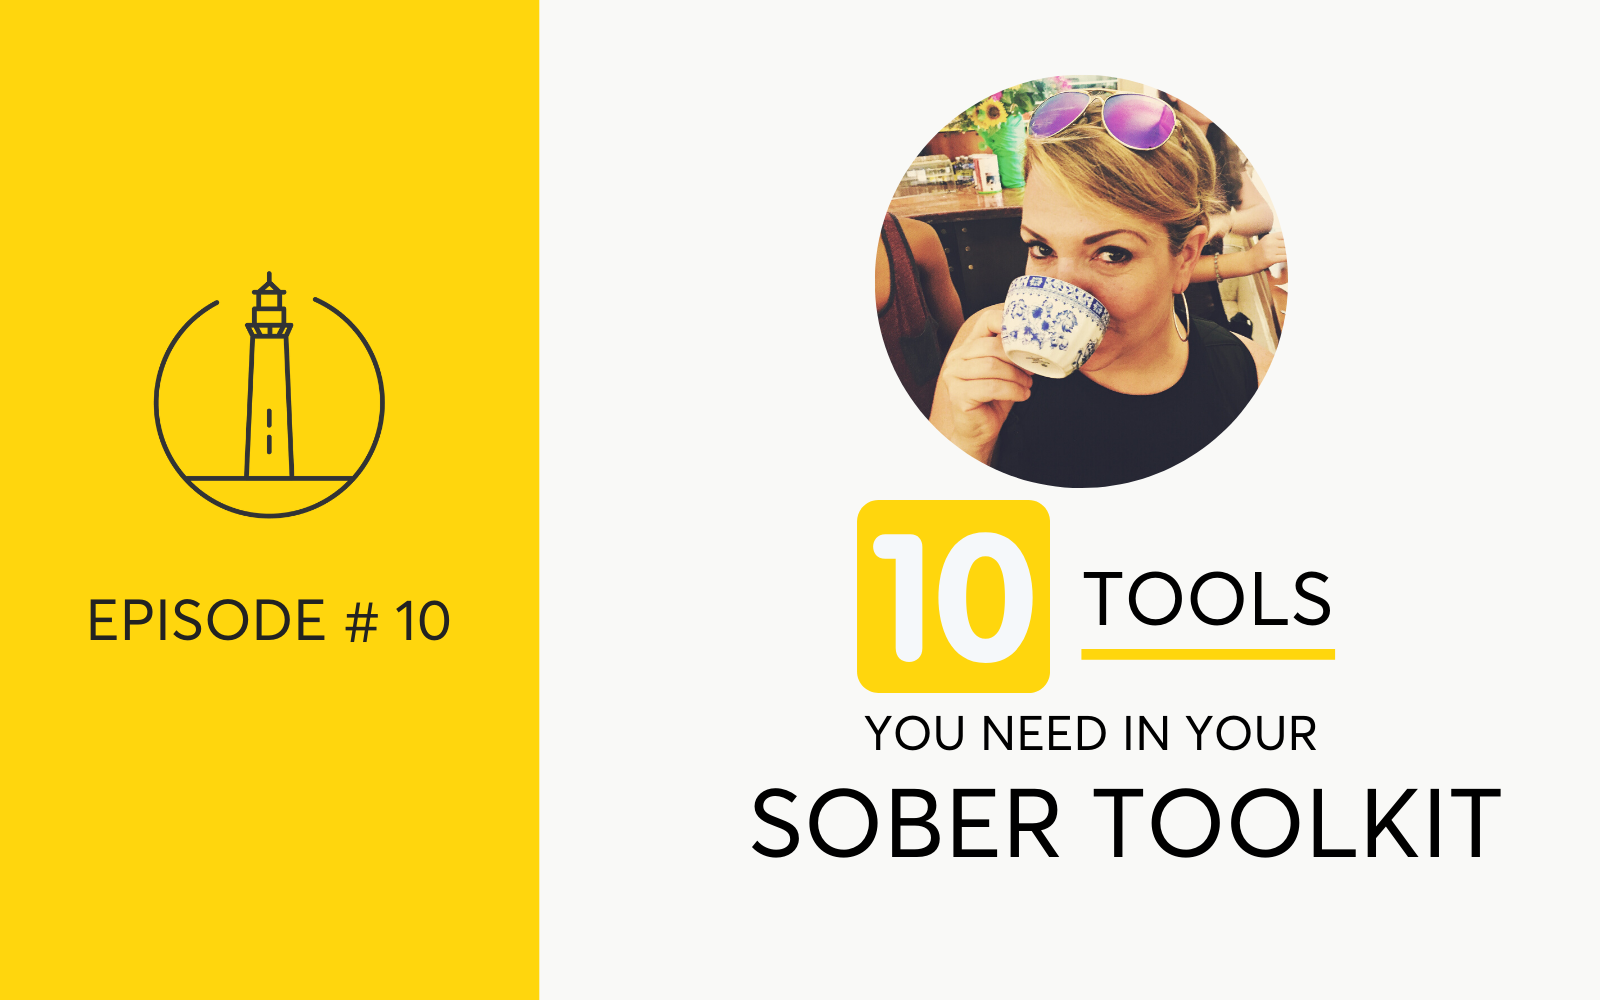 10 Tools You Need In Your Sober Toolkit